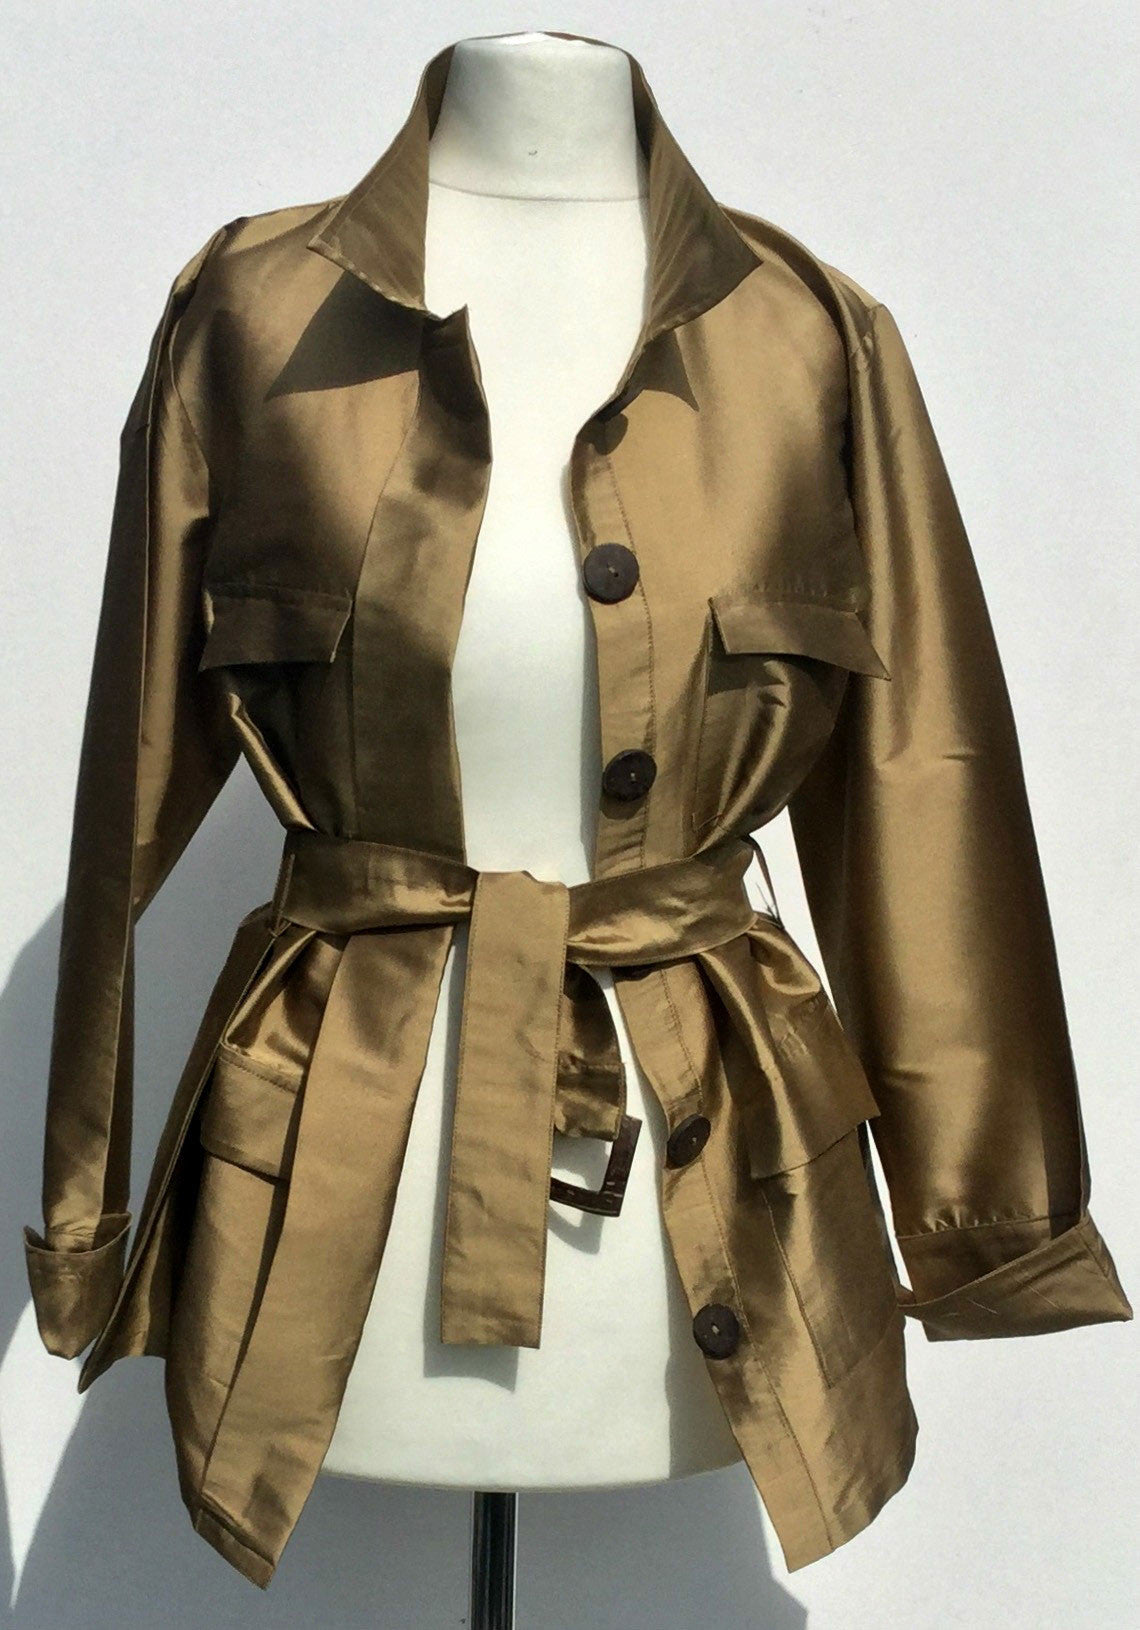 Sketch London Fashion Gazelle Safari Jacket Gold Taffeta Ethical Sustainable Women Independent British Designer